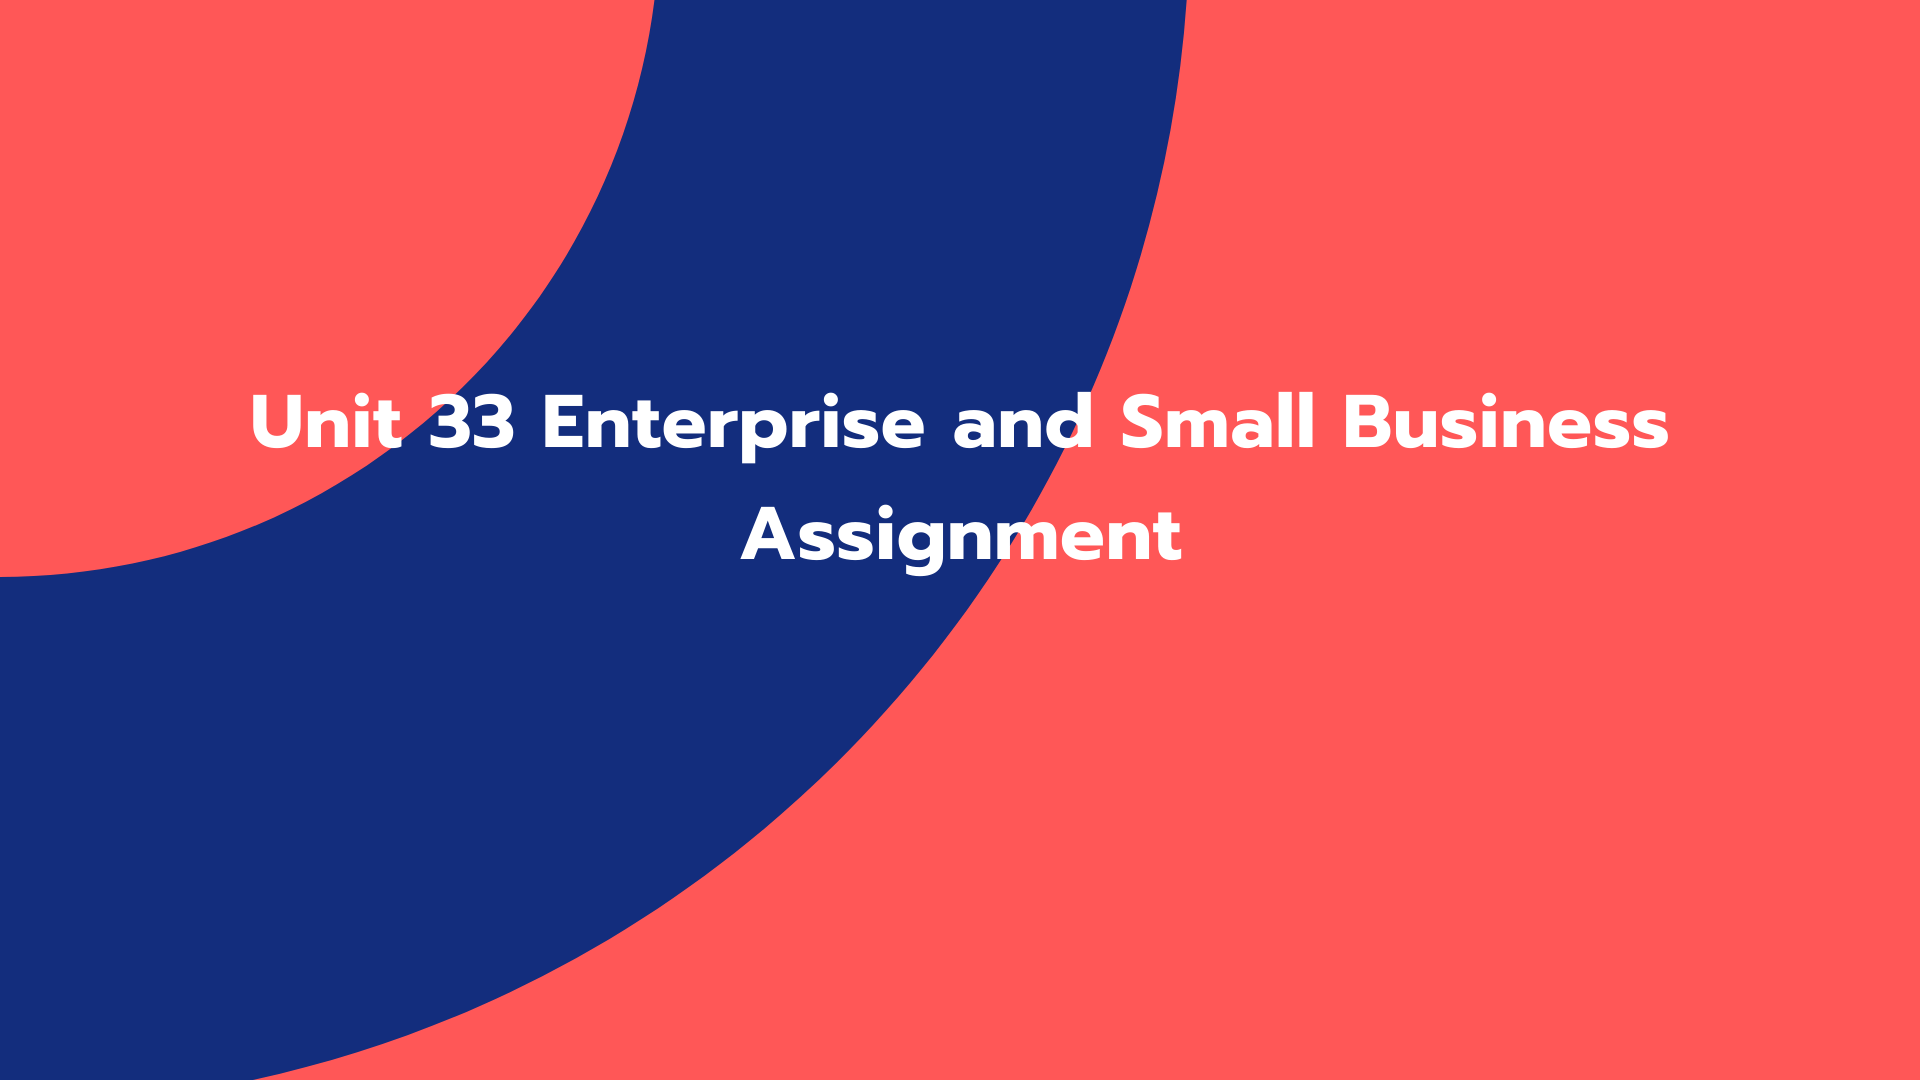 Unit 33 Enterprise and Small Business Assignment